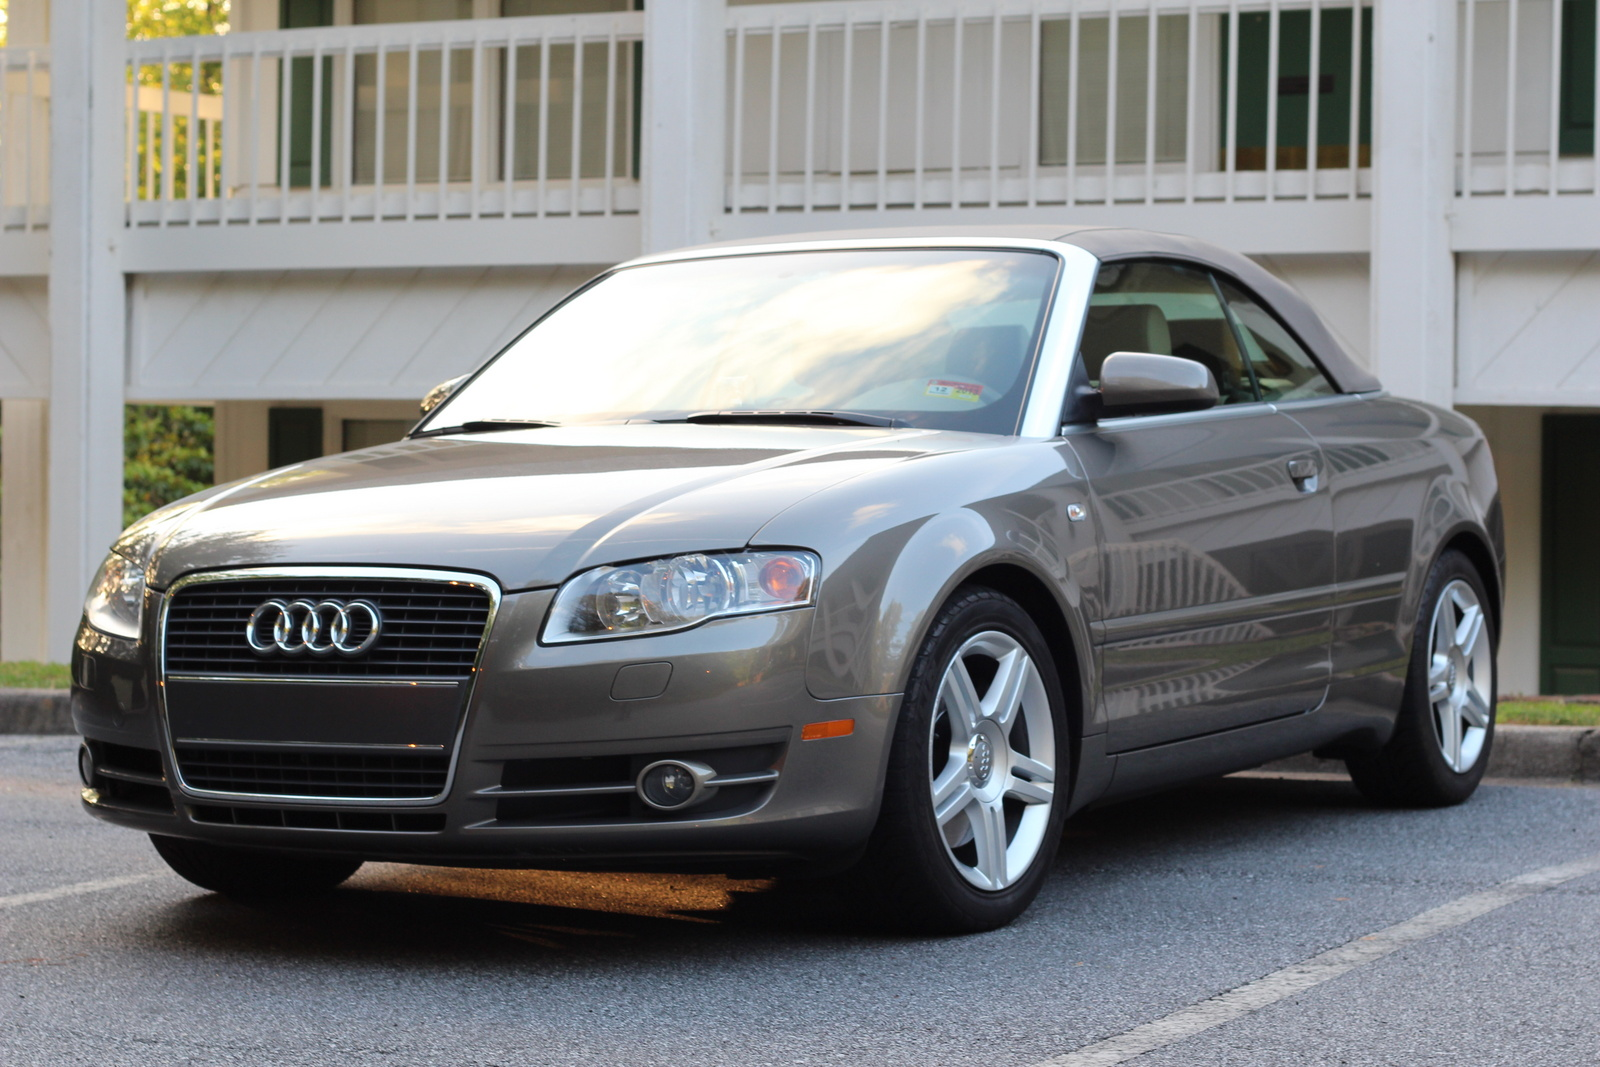 2007 audi a4 pictures cargurus. Black Bedroom Furniture Sets. Home Design Ideas